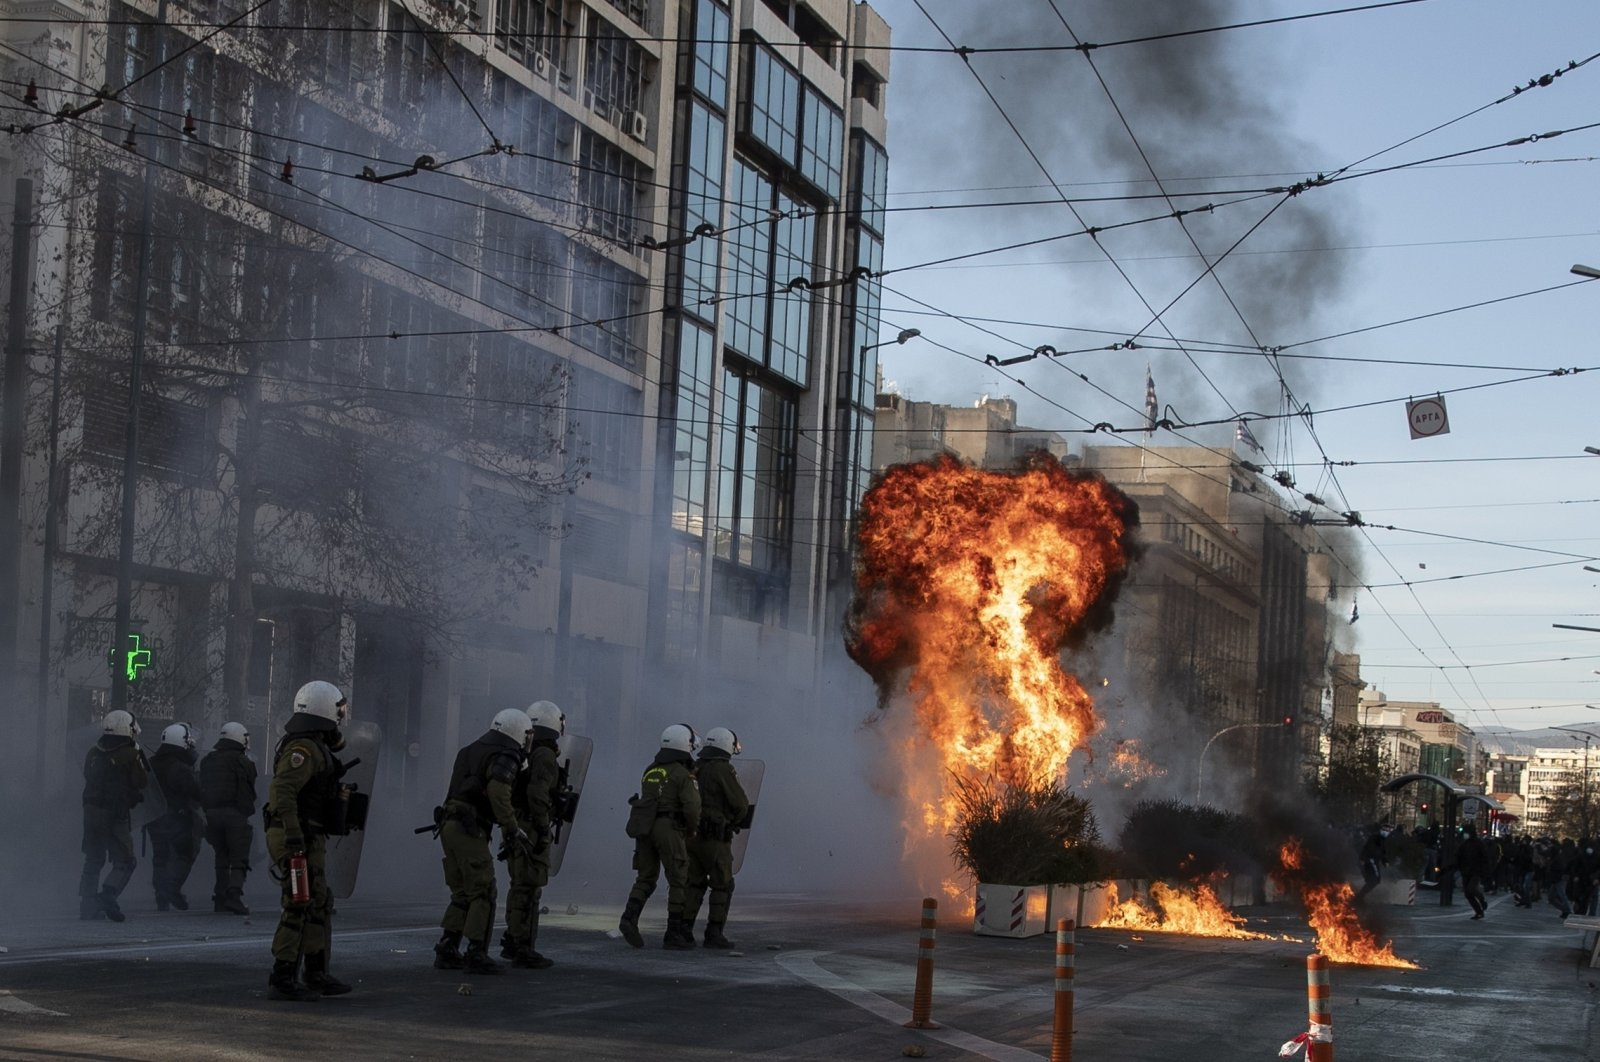 Protesters throw a petrol bomb at riot police during a student rally against campus policing, in Athens, Greece, Feb. 10, 2021. (AP Photo)